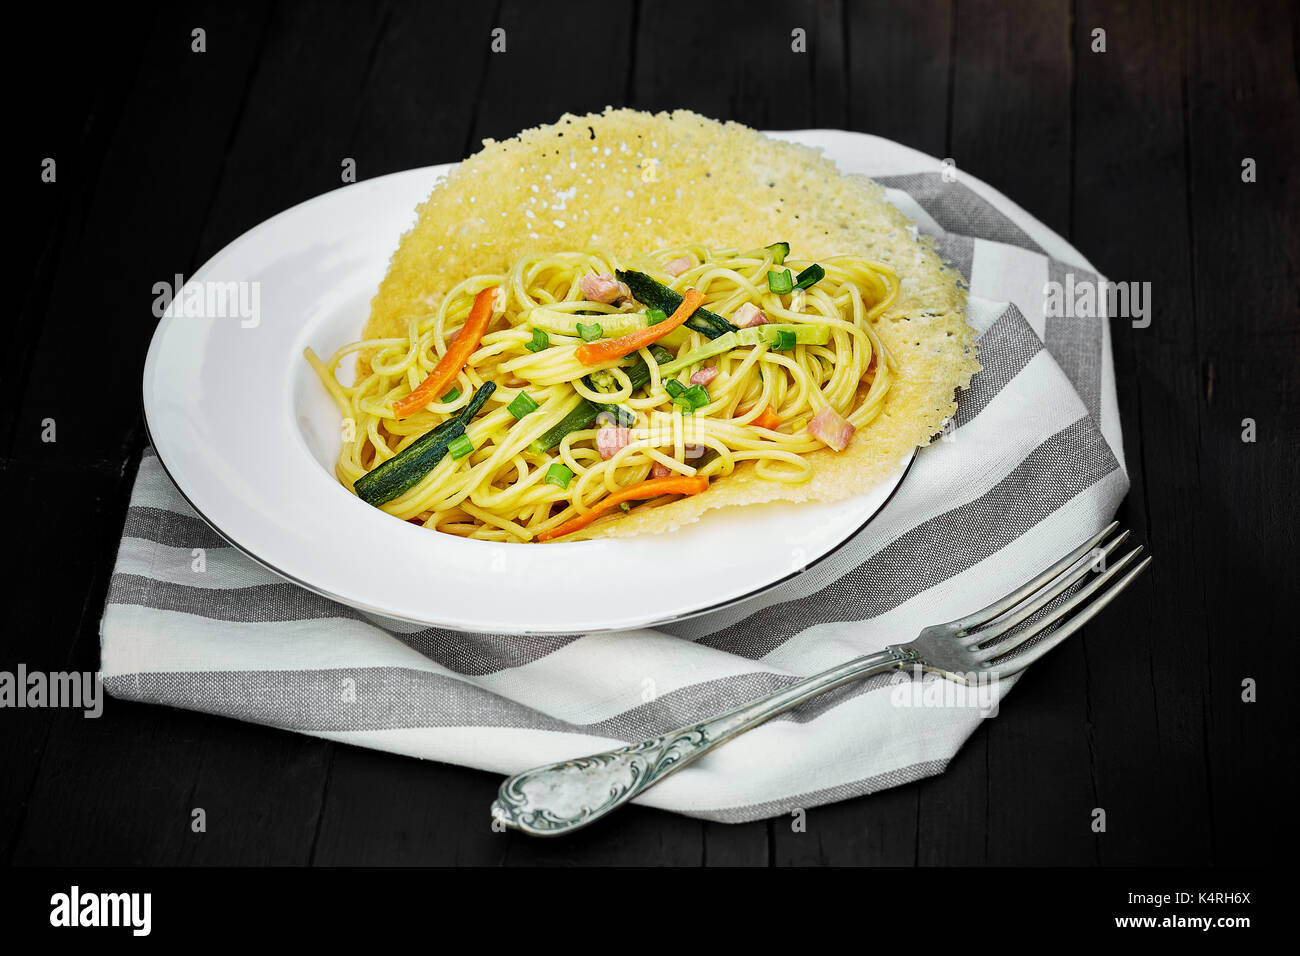 Plate of spaghetti with stuffed vegetables served on melted cheese waffle. - Stock Image